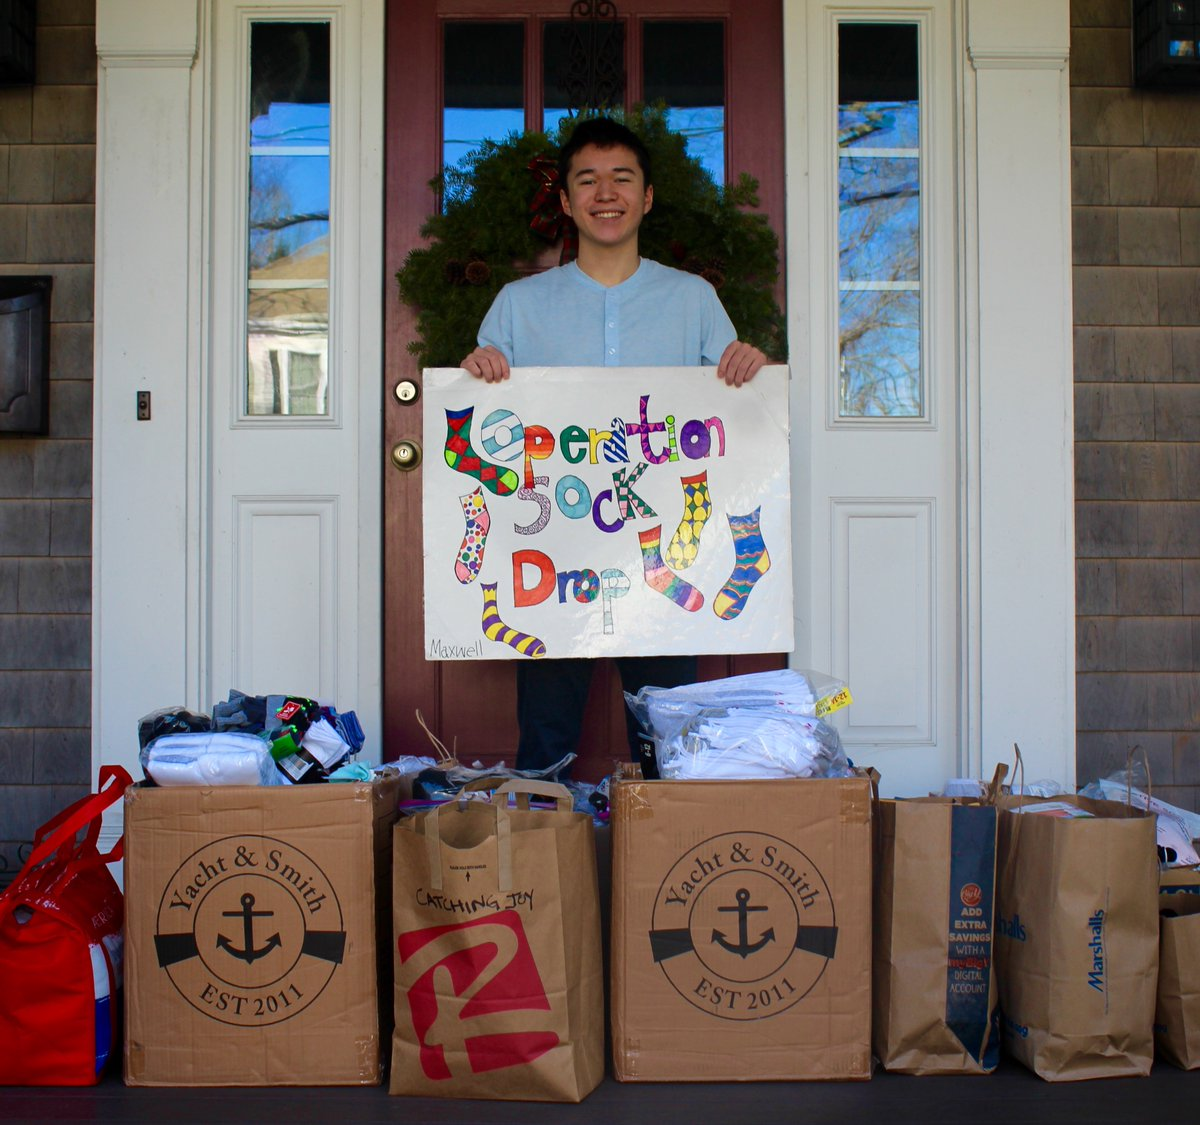 Maxwell Surprenant is honored to lead @CatchingJoy's Operation Sock Drop in partnership with the @BidenInaugural for #MLKDay #NationalDayofService. In just a couple weeks, we have surpassed 2021 socks- now nearing 3000 socks!!! #DoGoodFromHome #YouthHavePower #ChannelKindness